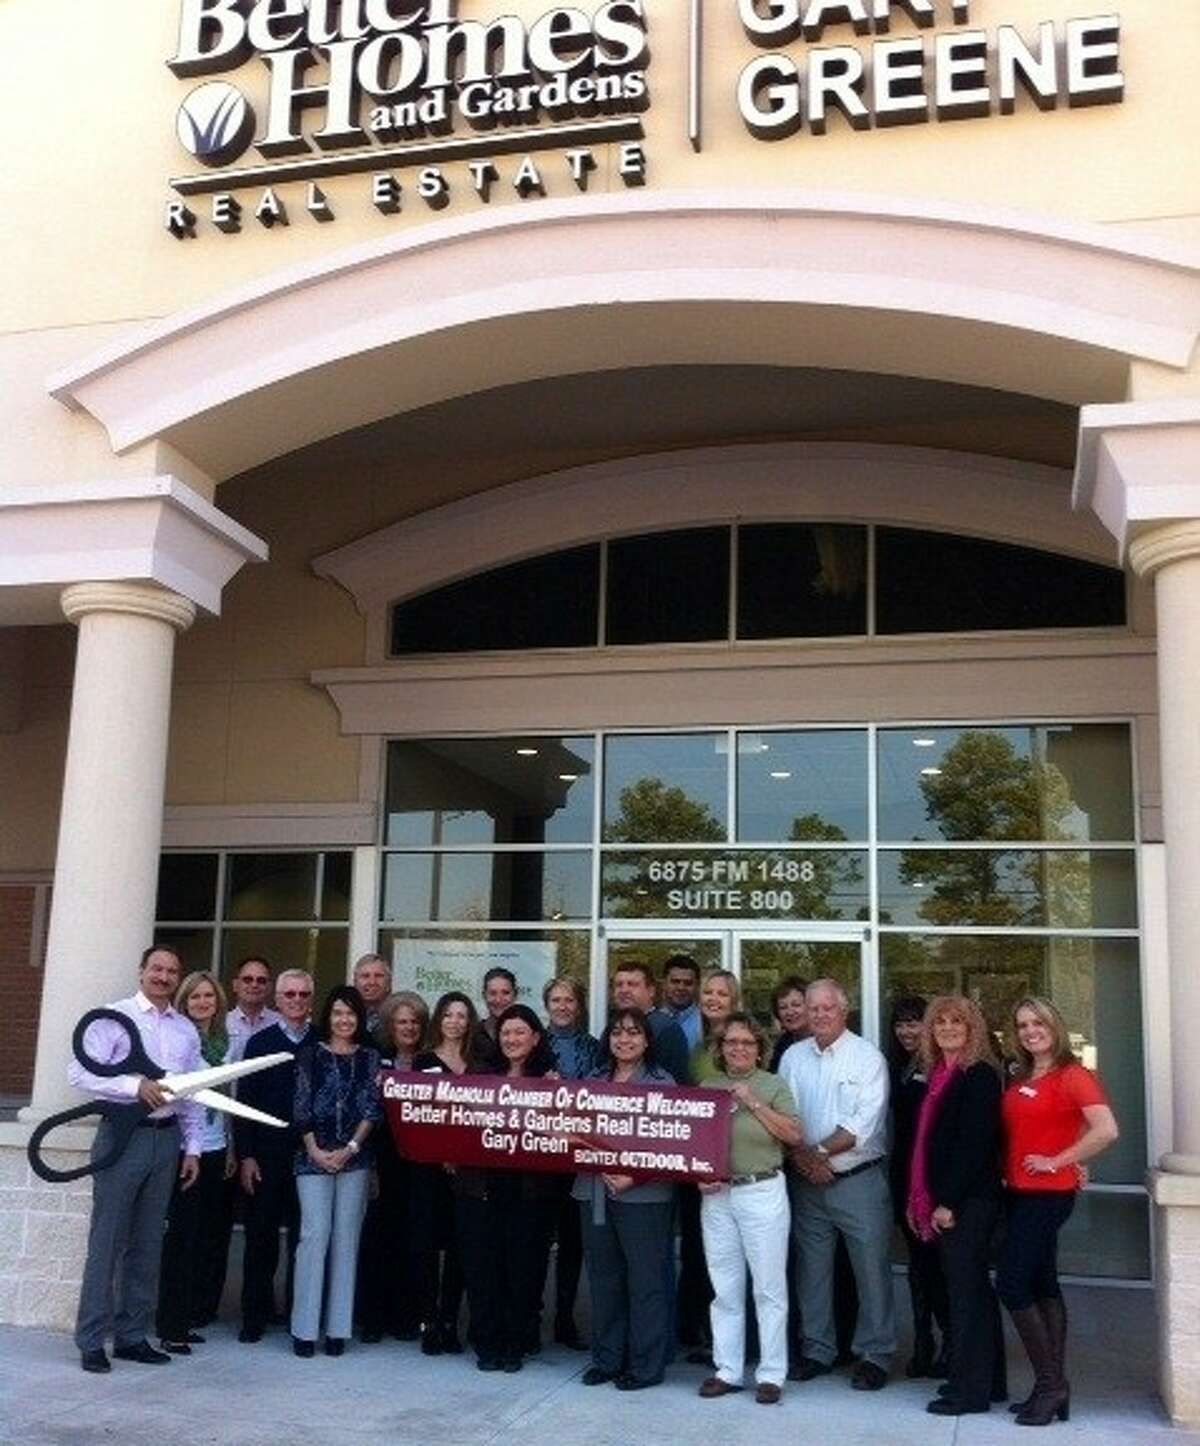 Better Homes and Gardens Gary Greene Real Estate in Magnolia is one of 24 sales offices in the Houston market.